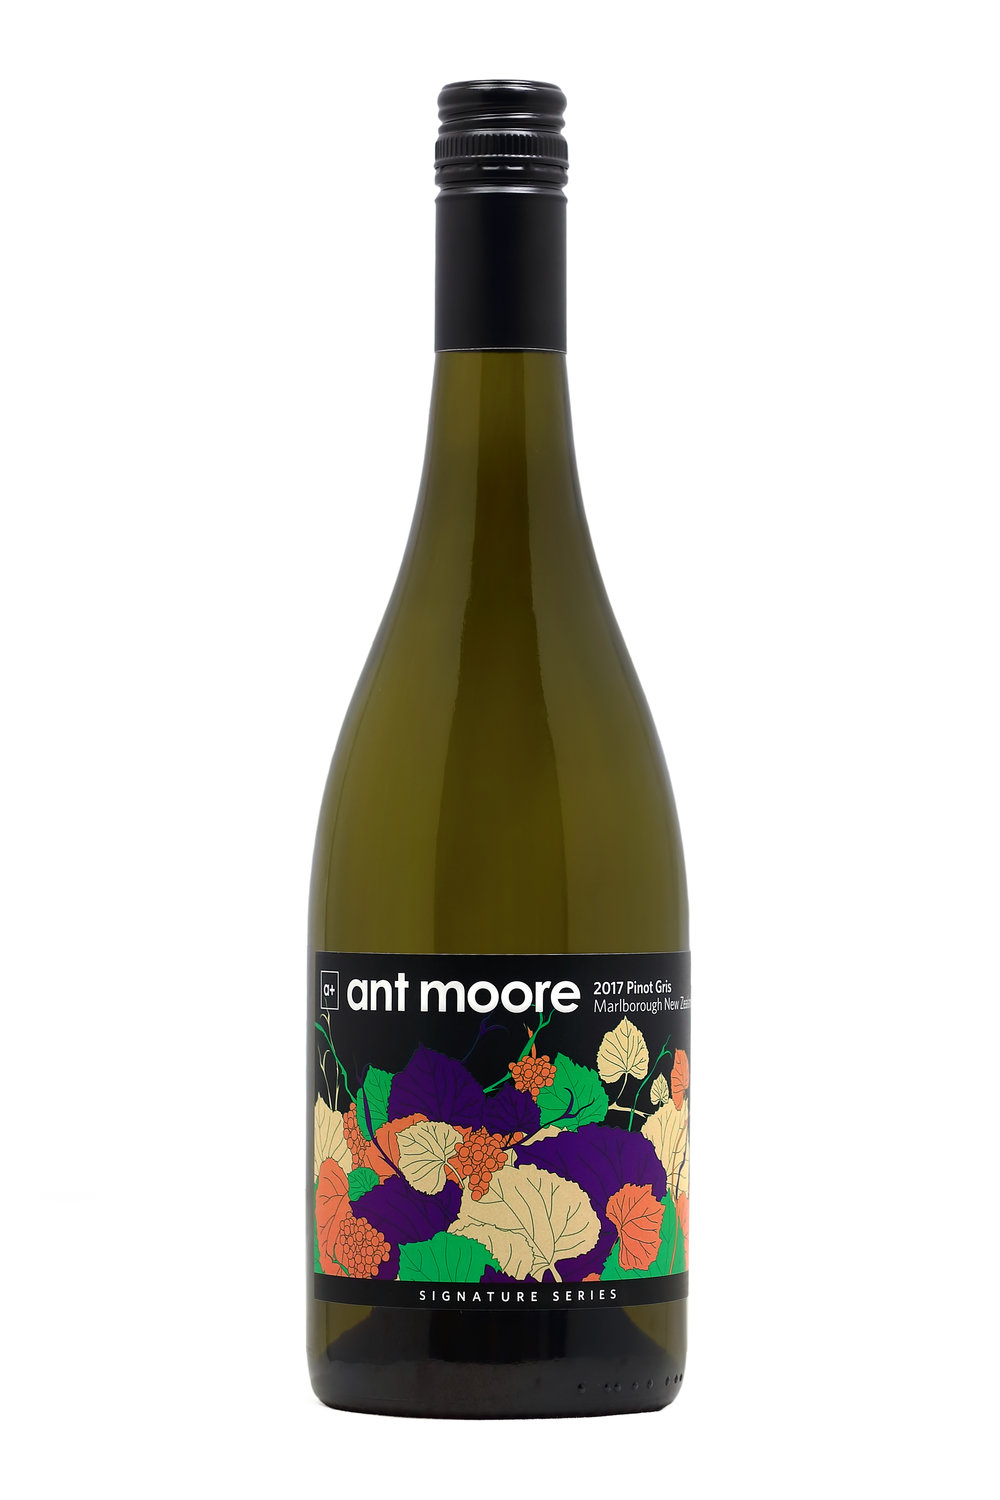 Ant Moore Signature Series Pinot Gris 2017 - Pear and stone fruit flavours, followed by attractive secondary funky characteristics derived from indigenous yeast ferments. Lovely balance, with a soft smooth and lingering finish.